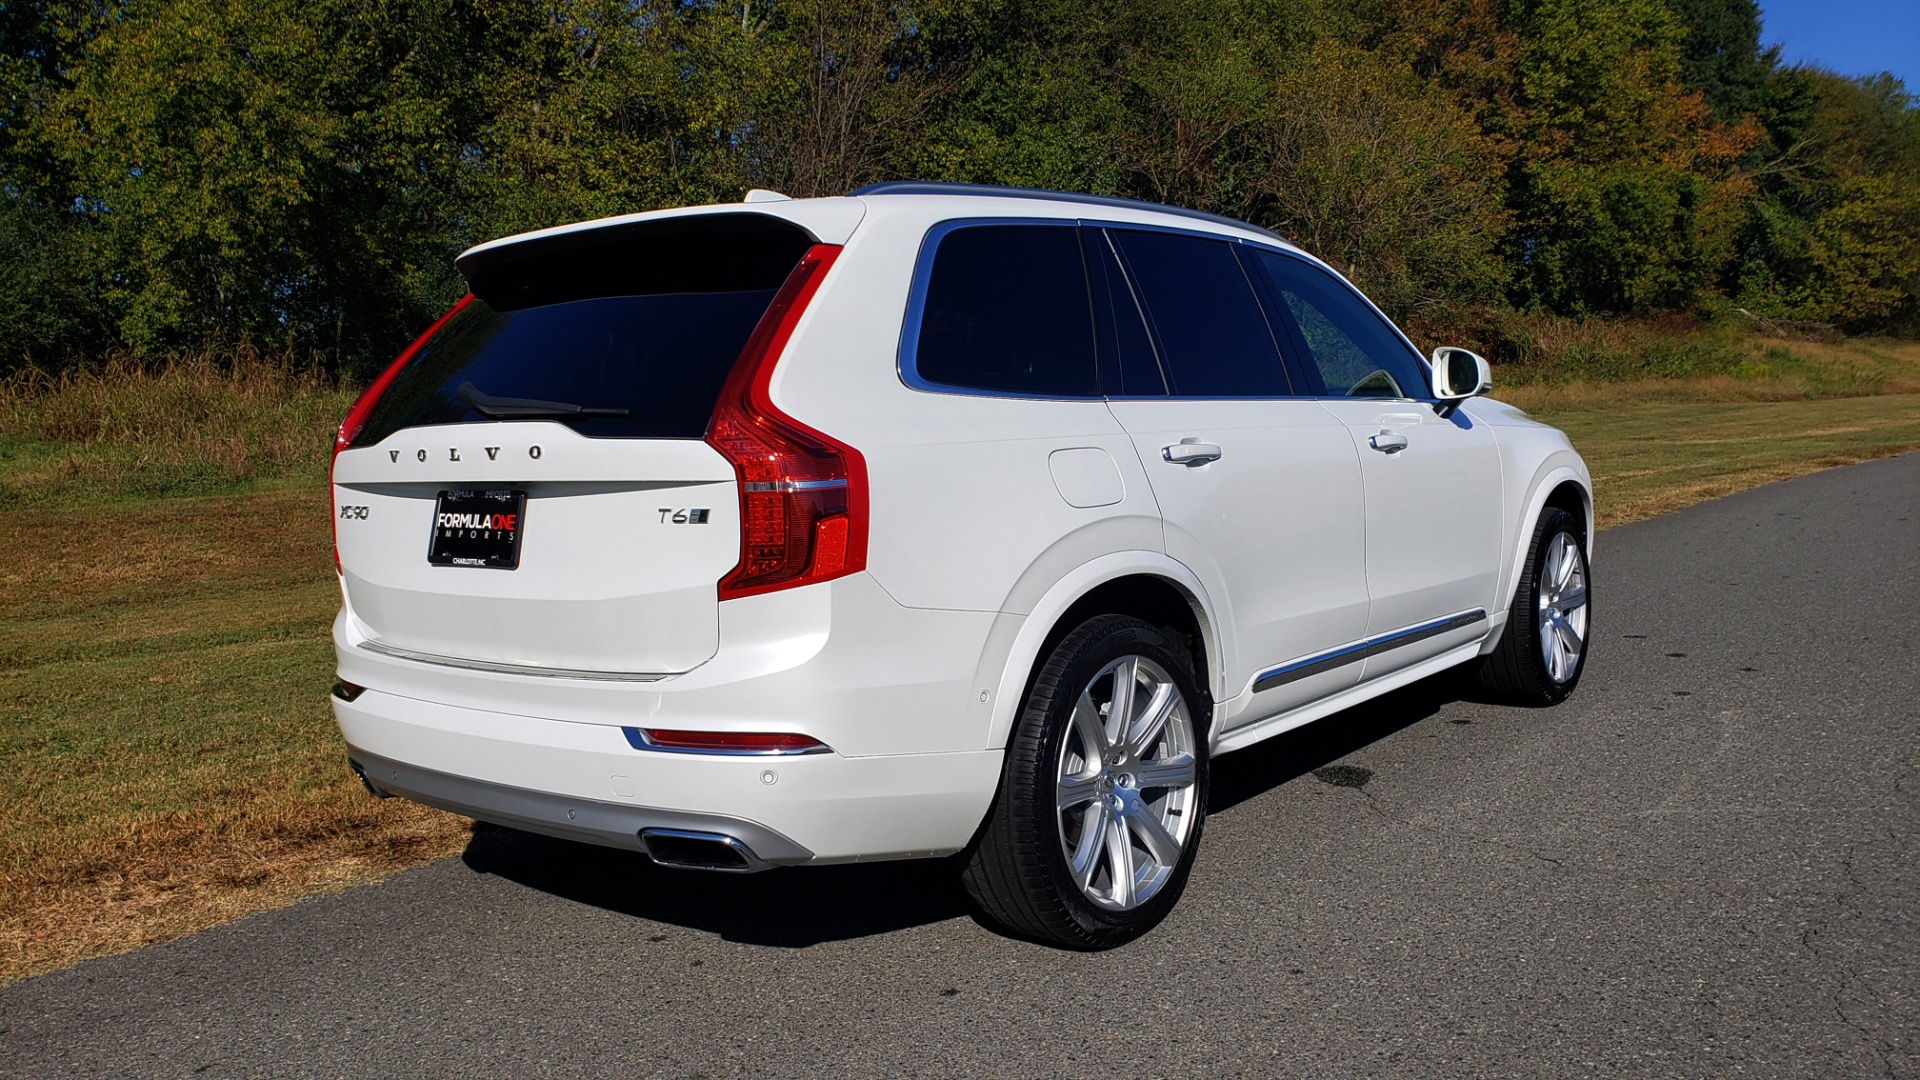 Used 2017 Volvo XC90 INSCRIPTION / AWD / NAV / SUNROOF / 3-ROW / CAMERA for sale Sold at Formula Imports in Charlotte NC 28227 15